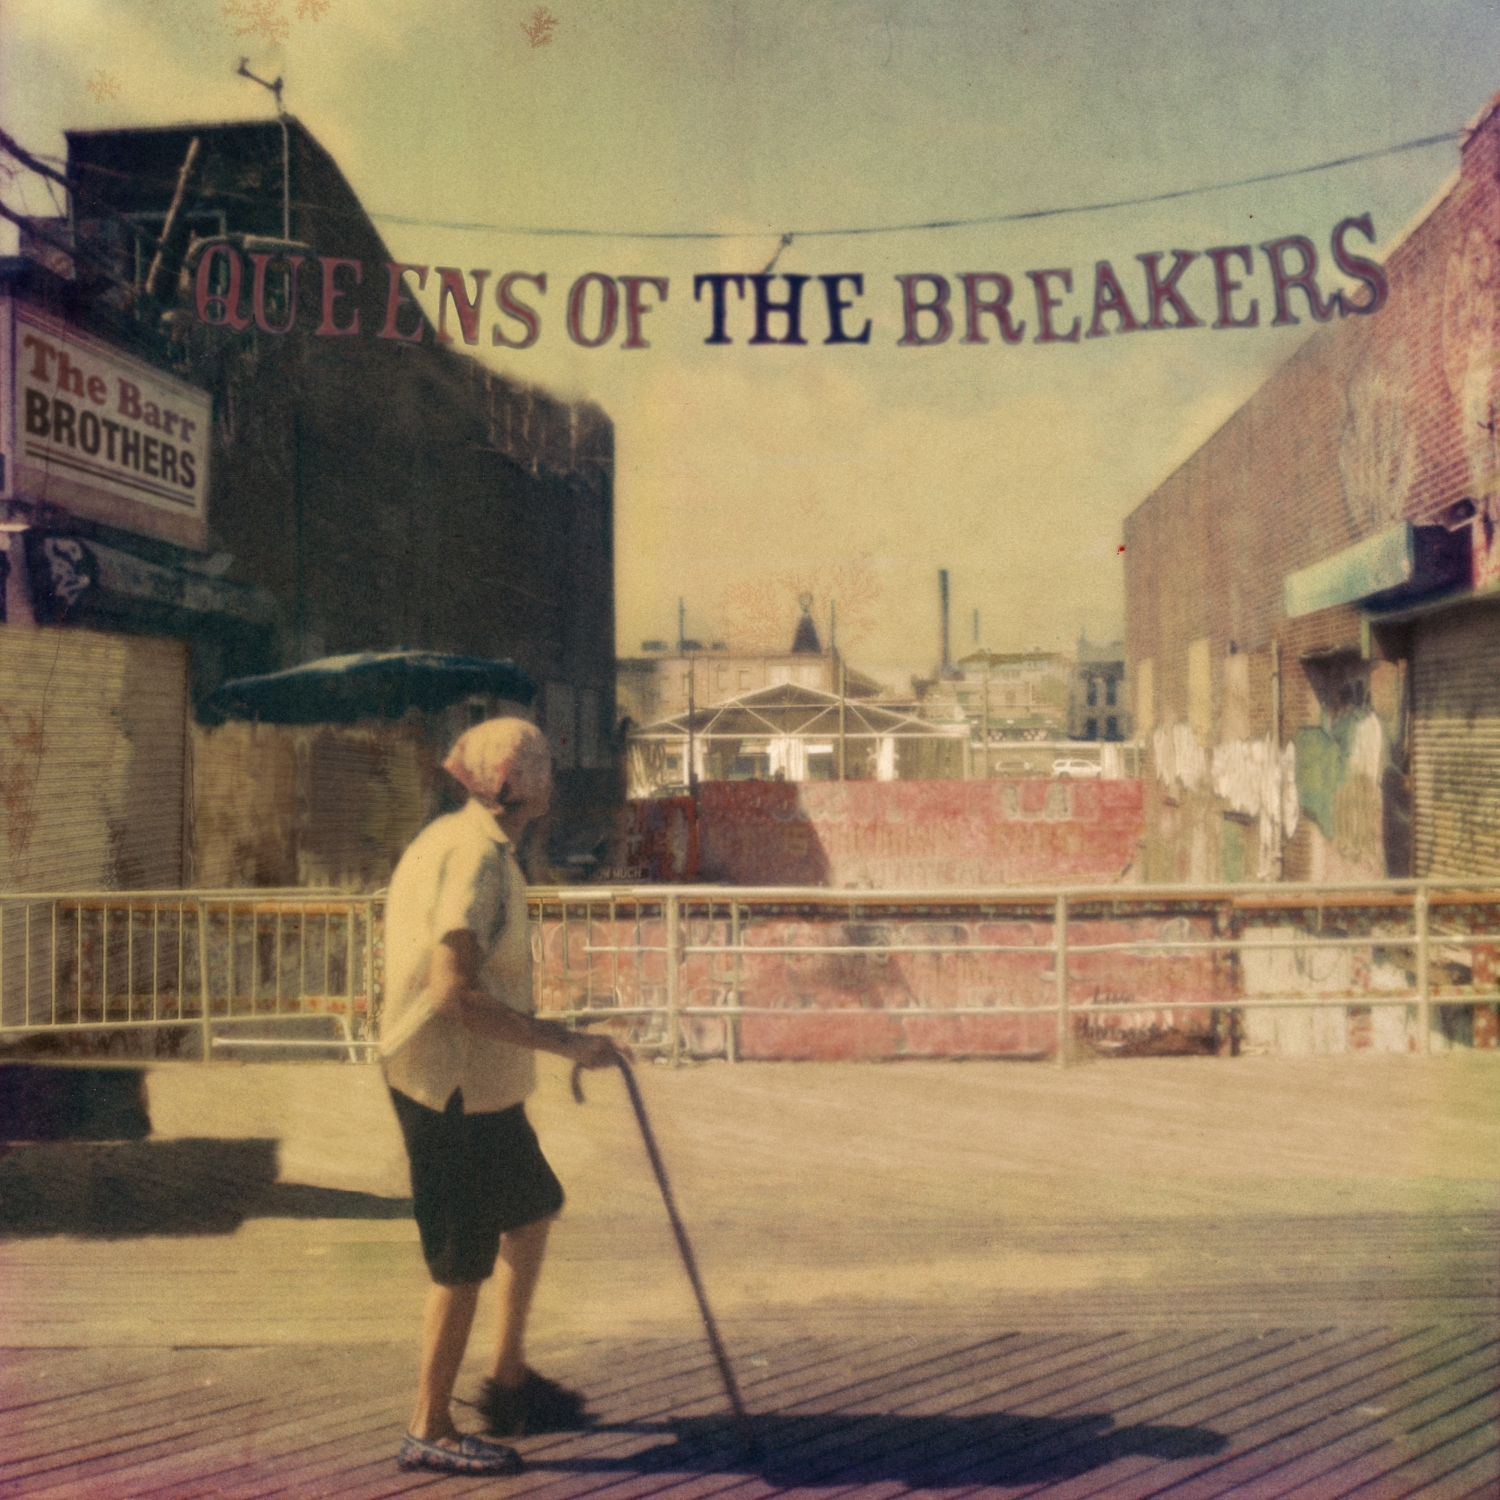 The Barr Brothers – Queens of the Breakers